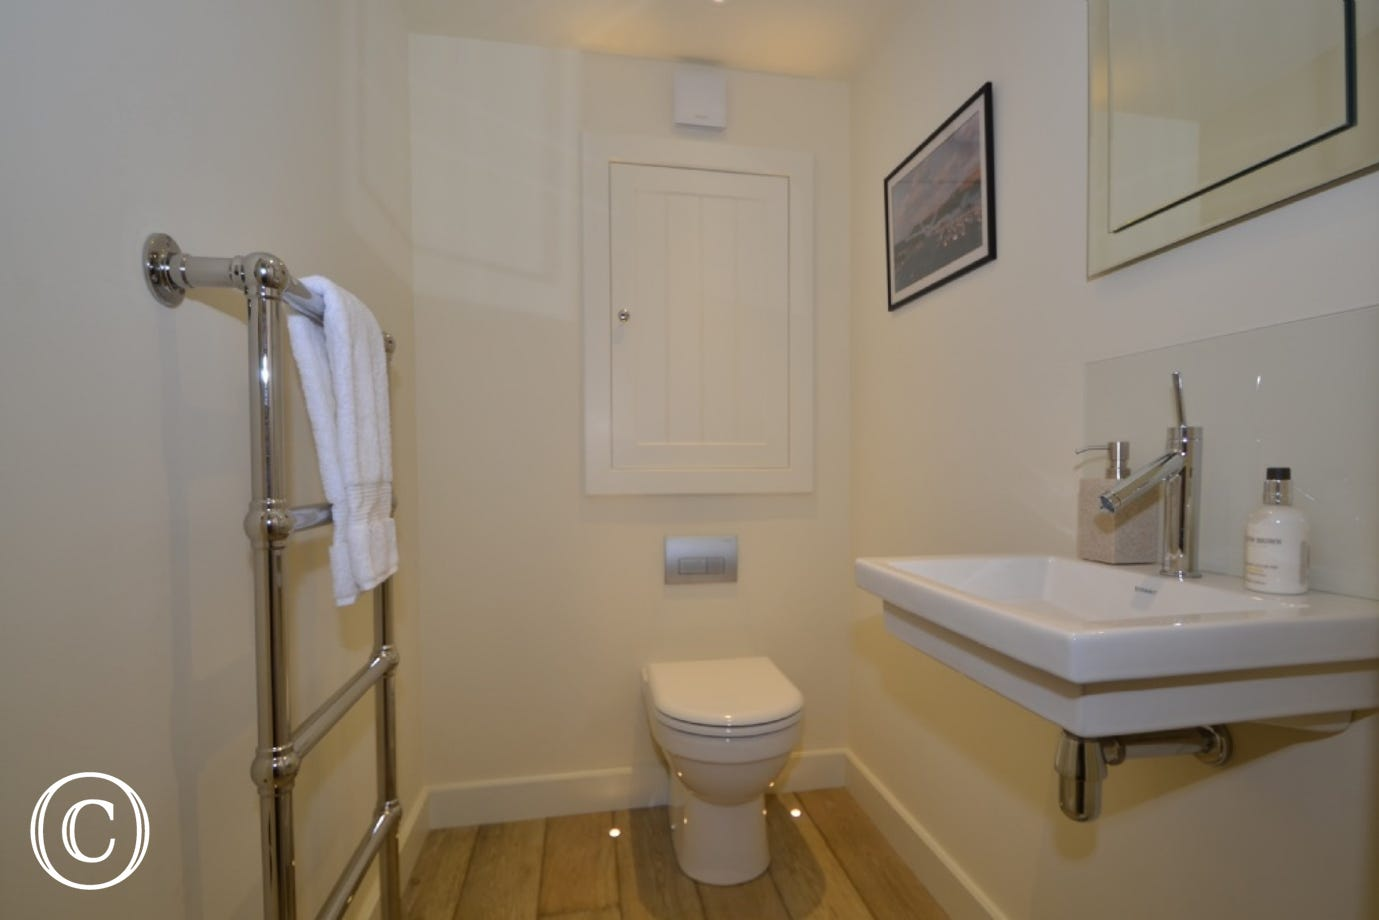 Bathroom at The Edge in Kingswear